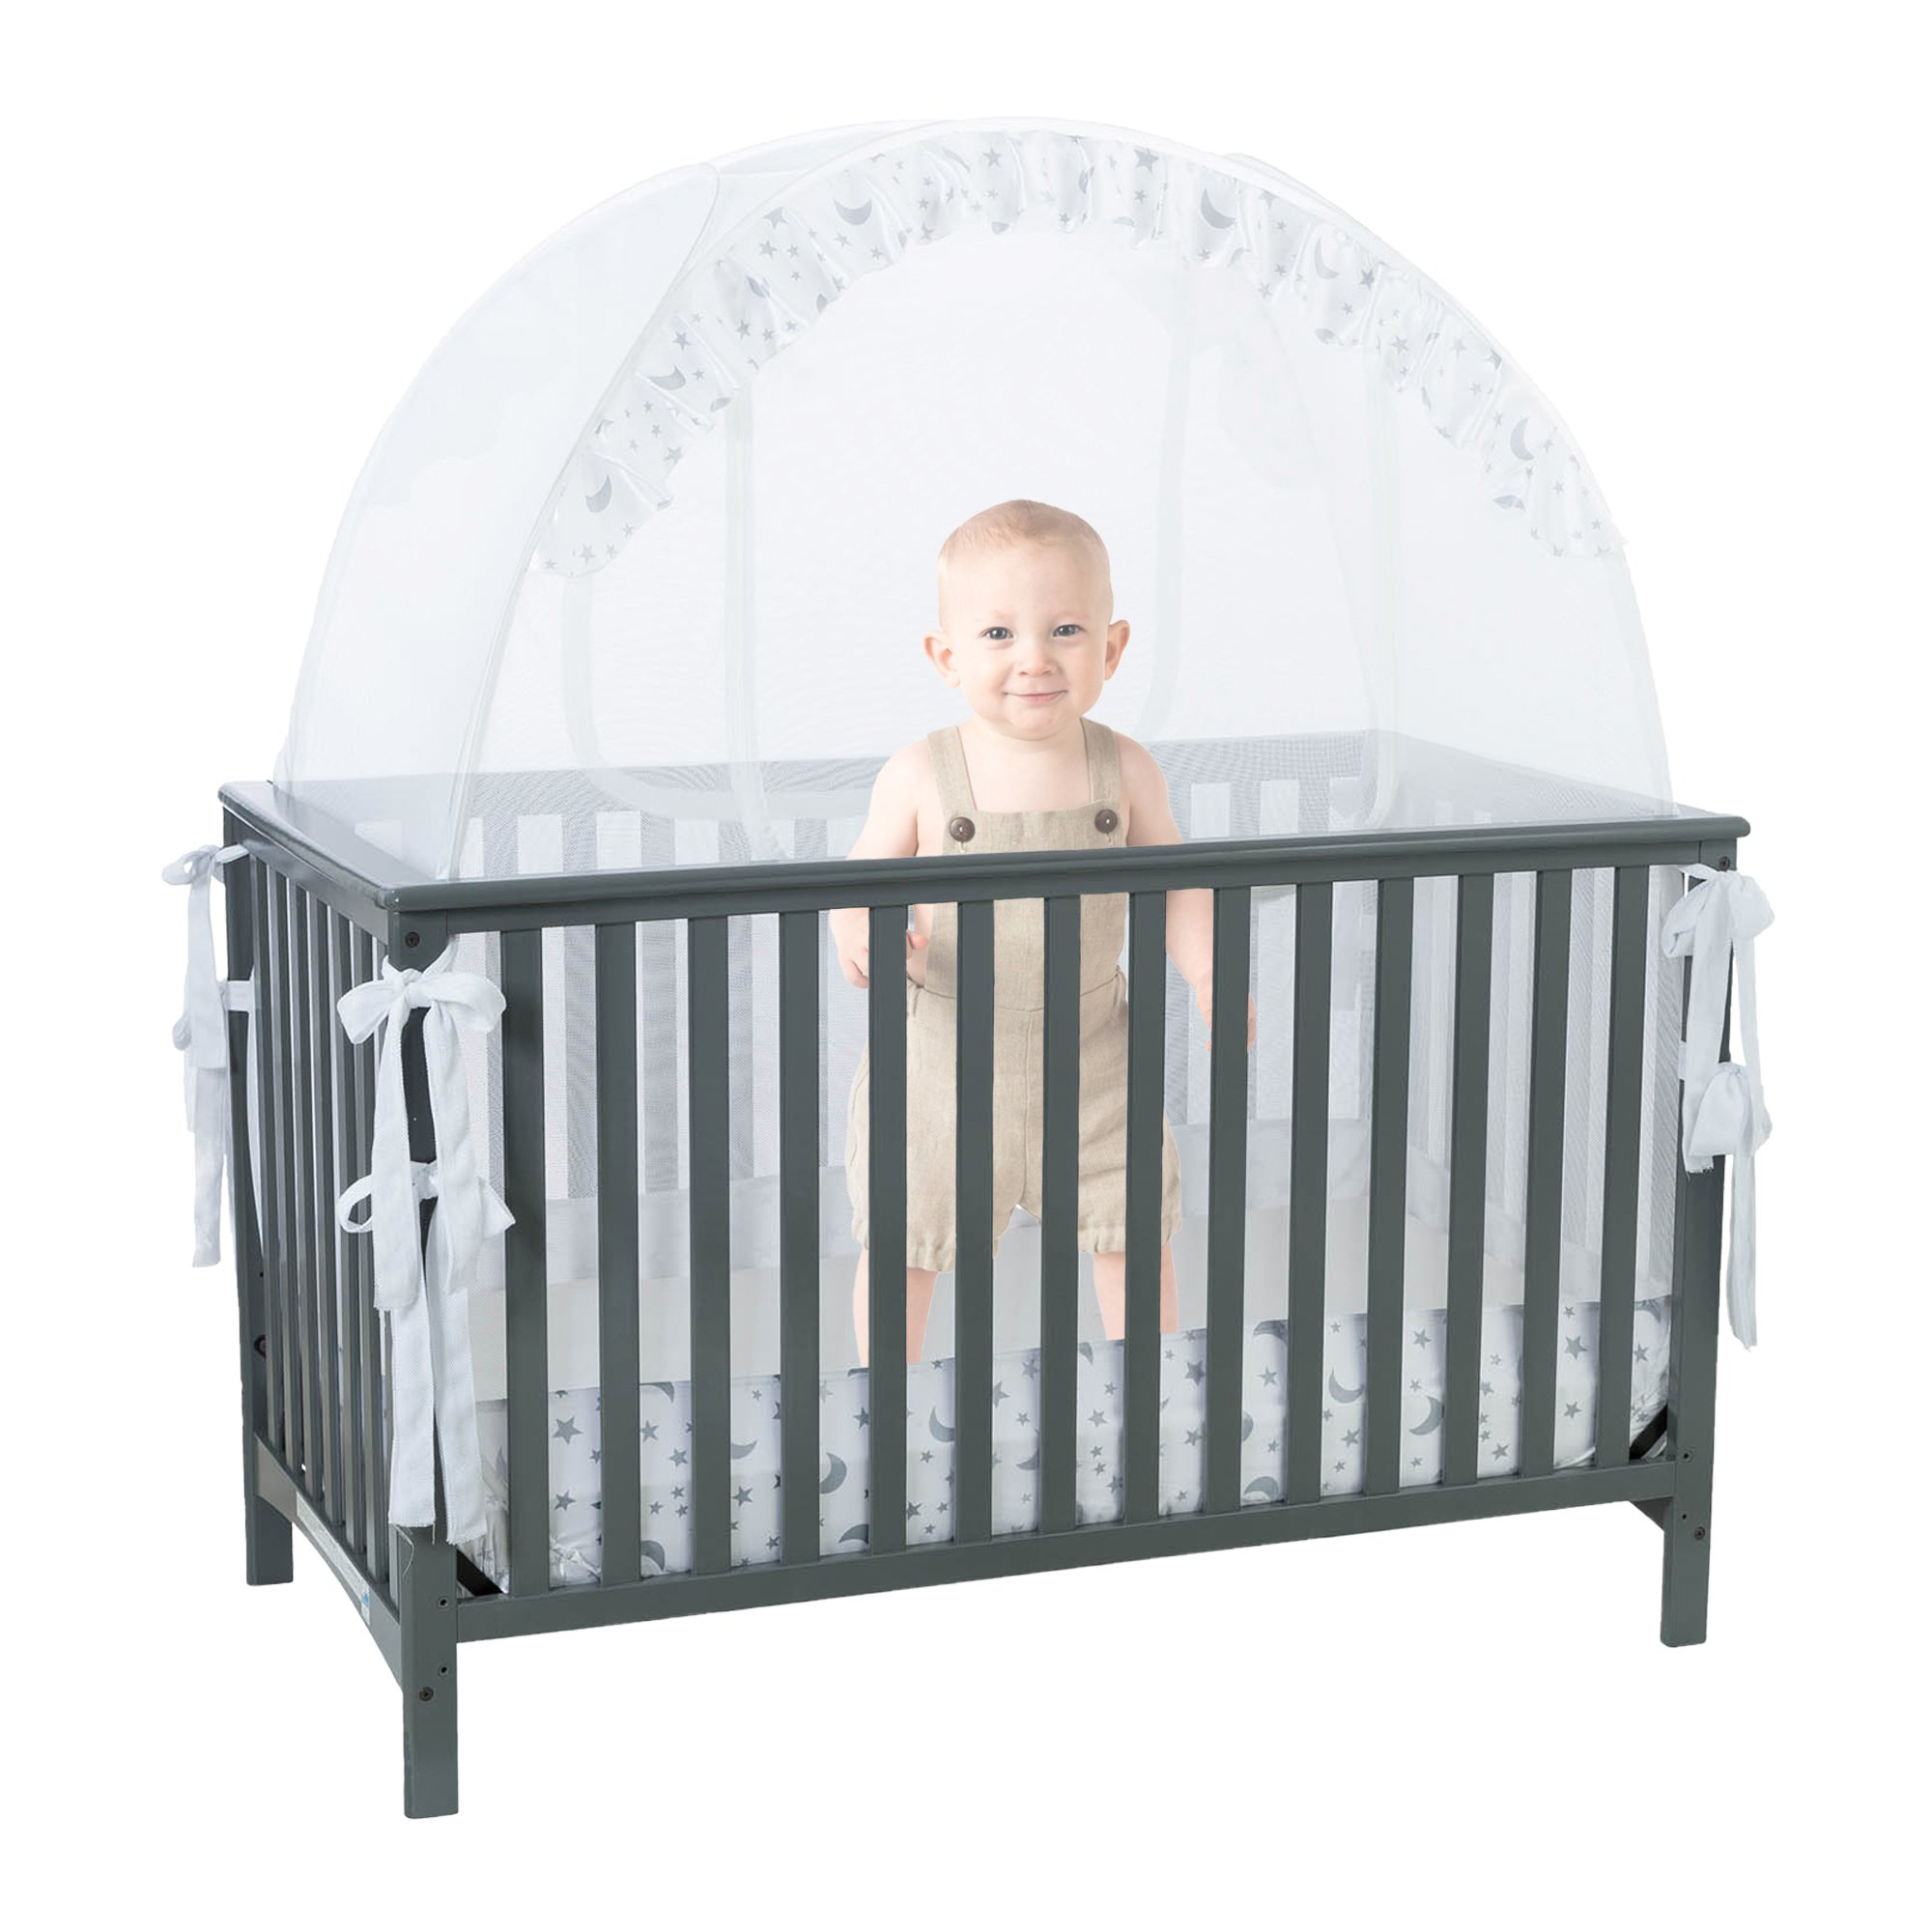 Amazon Com Baby Crib Tent Safety Net Pop Up Canopy Cover